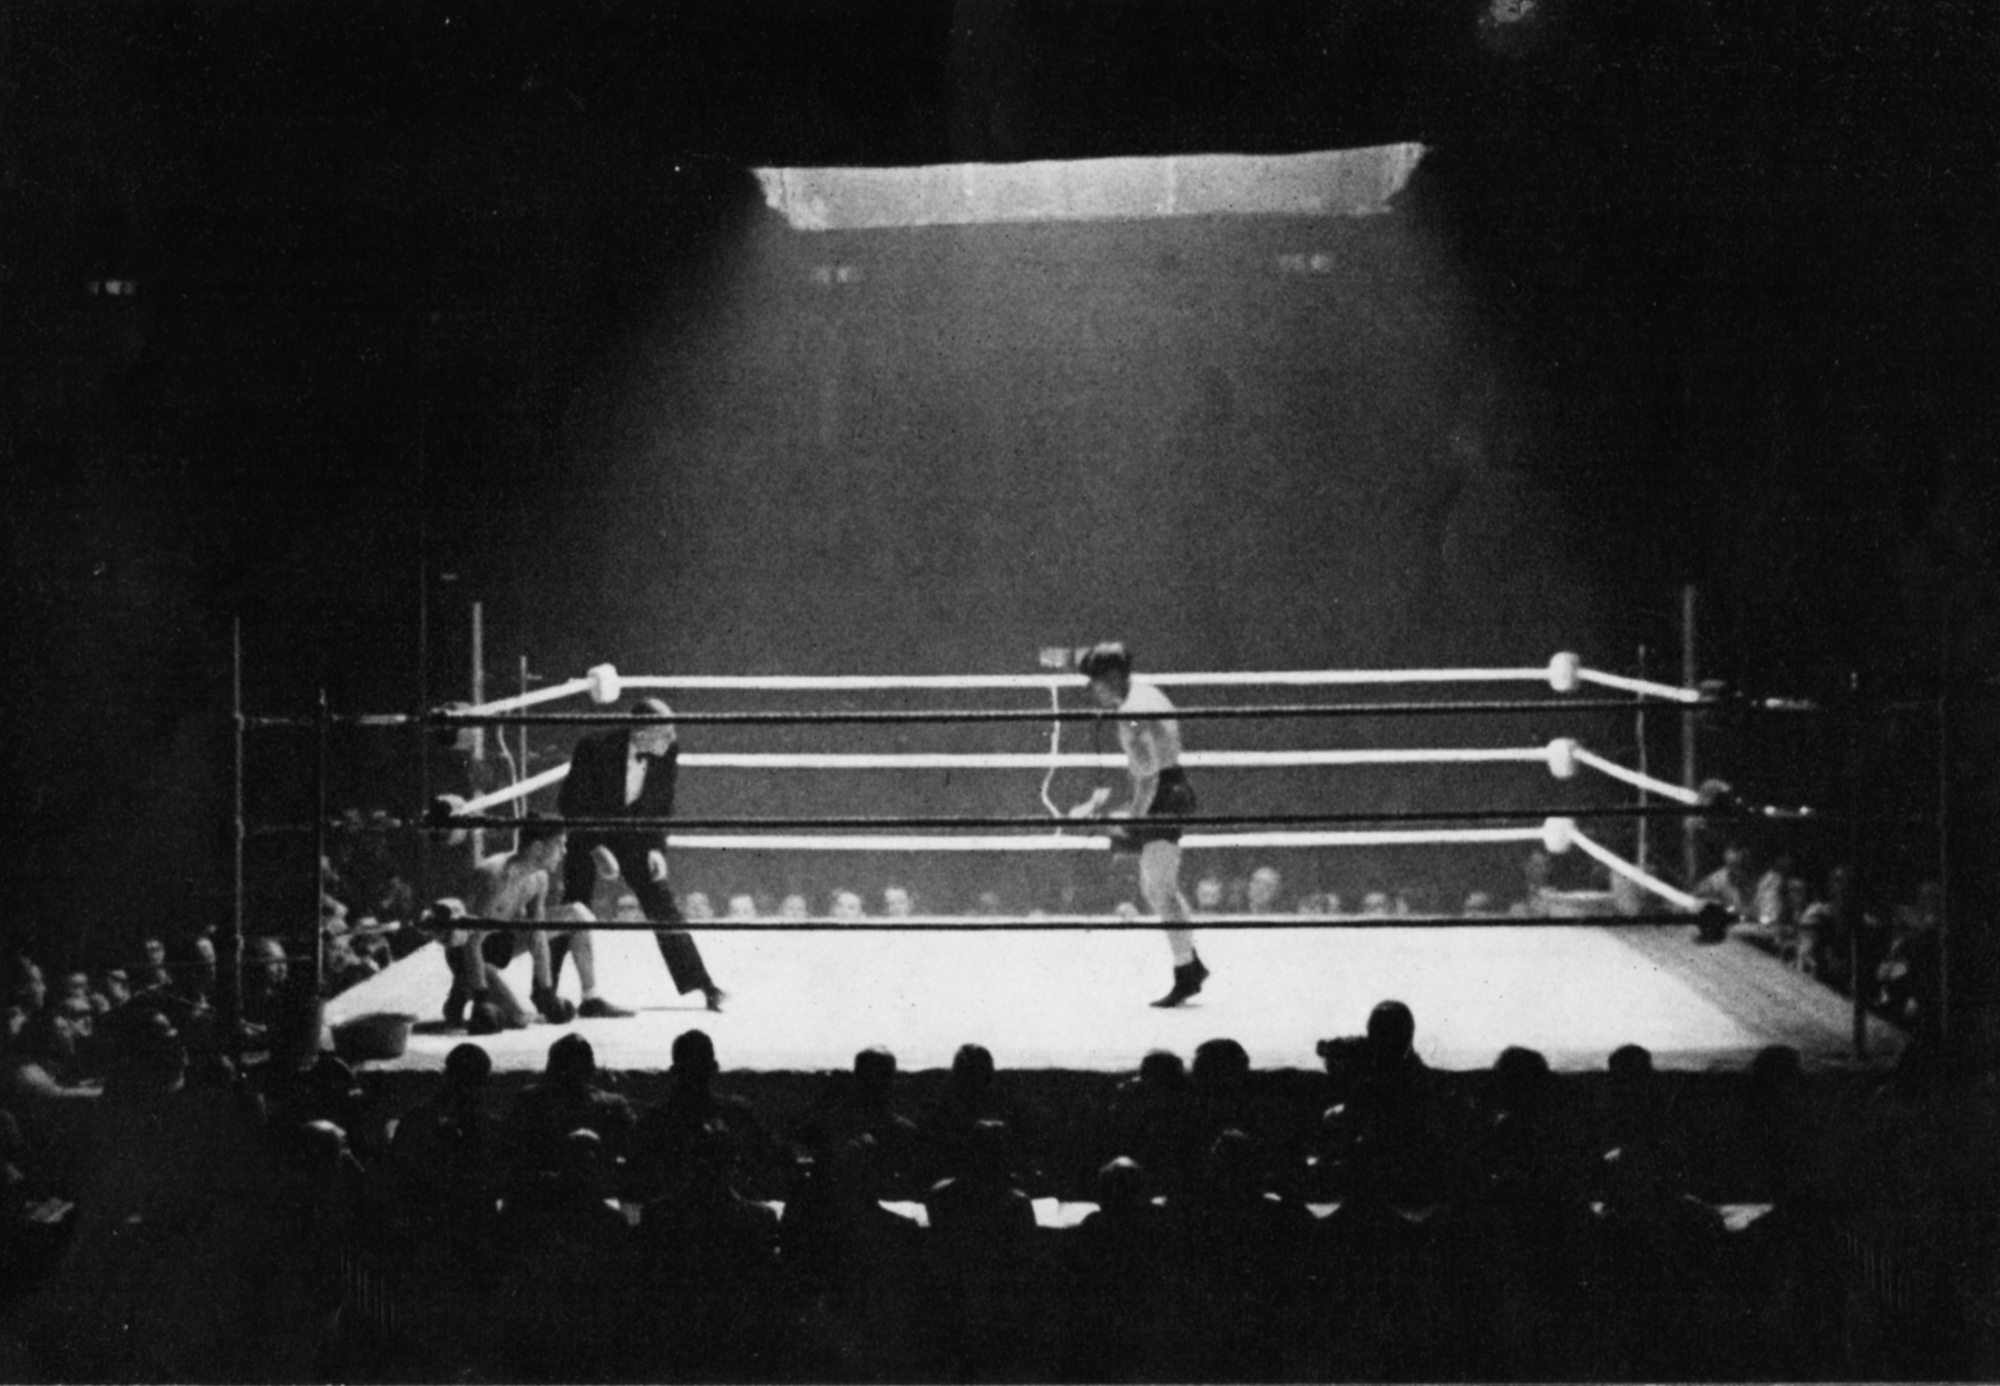 A boxing ring, dramatically lit from above